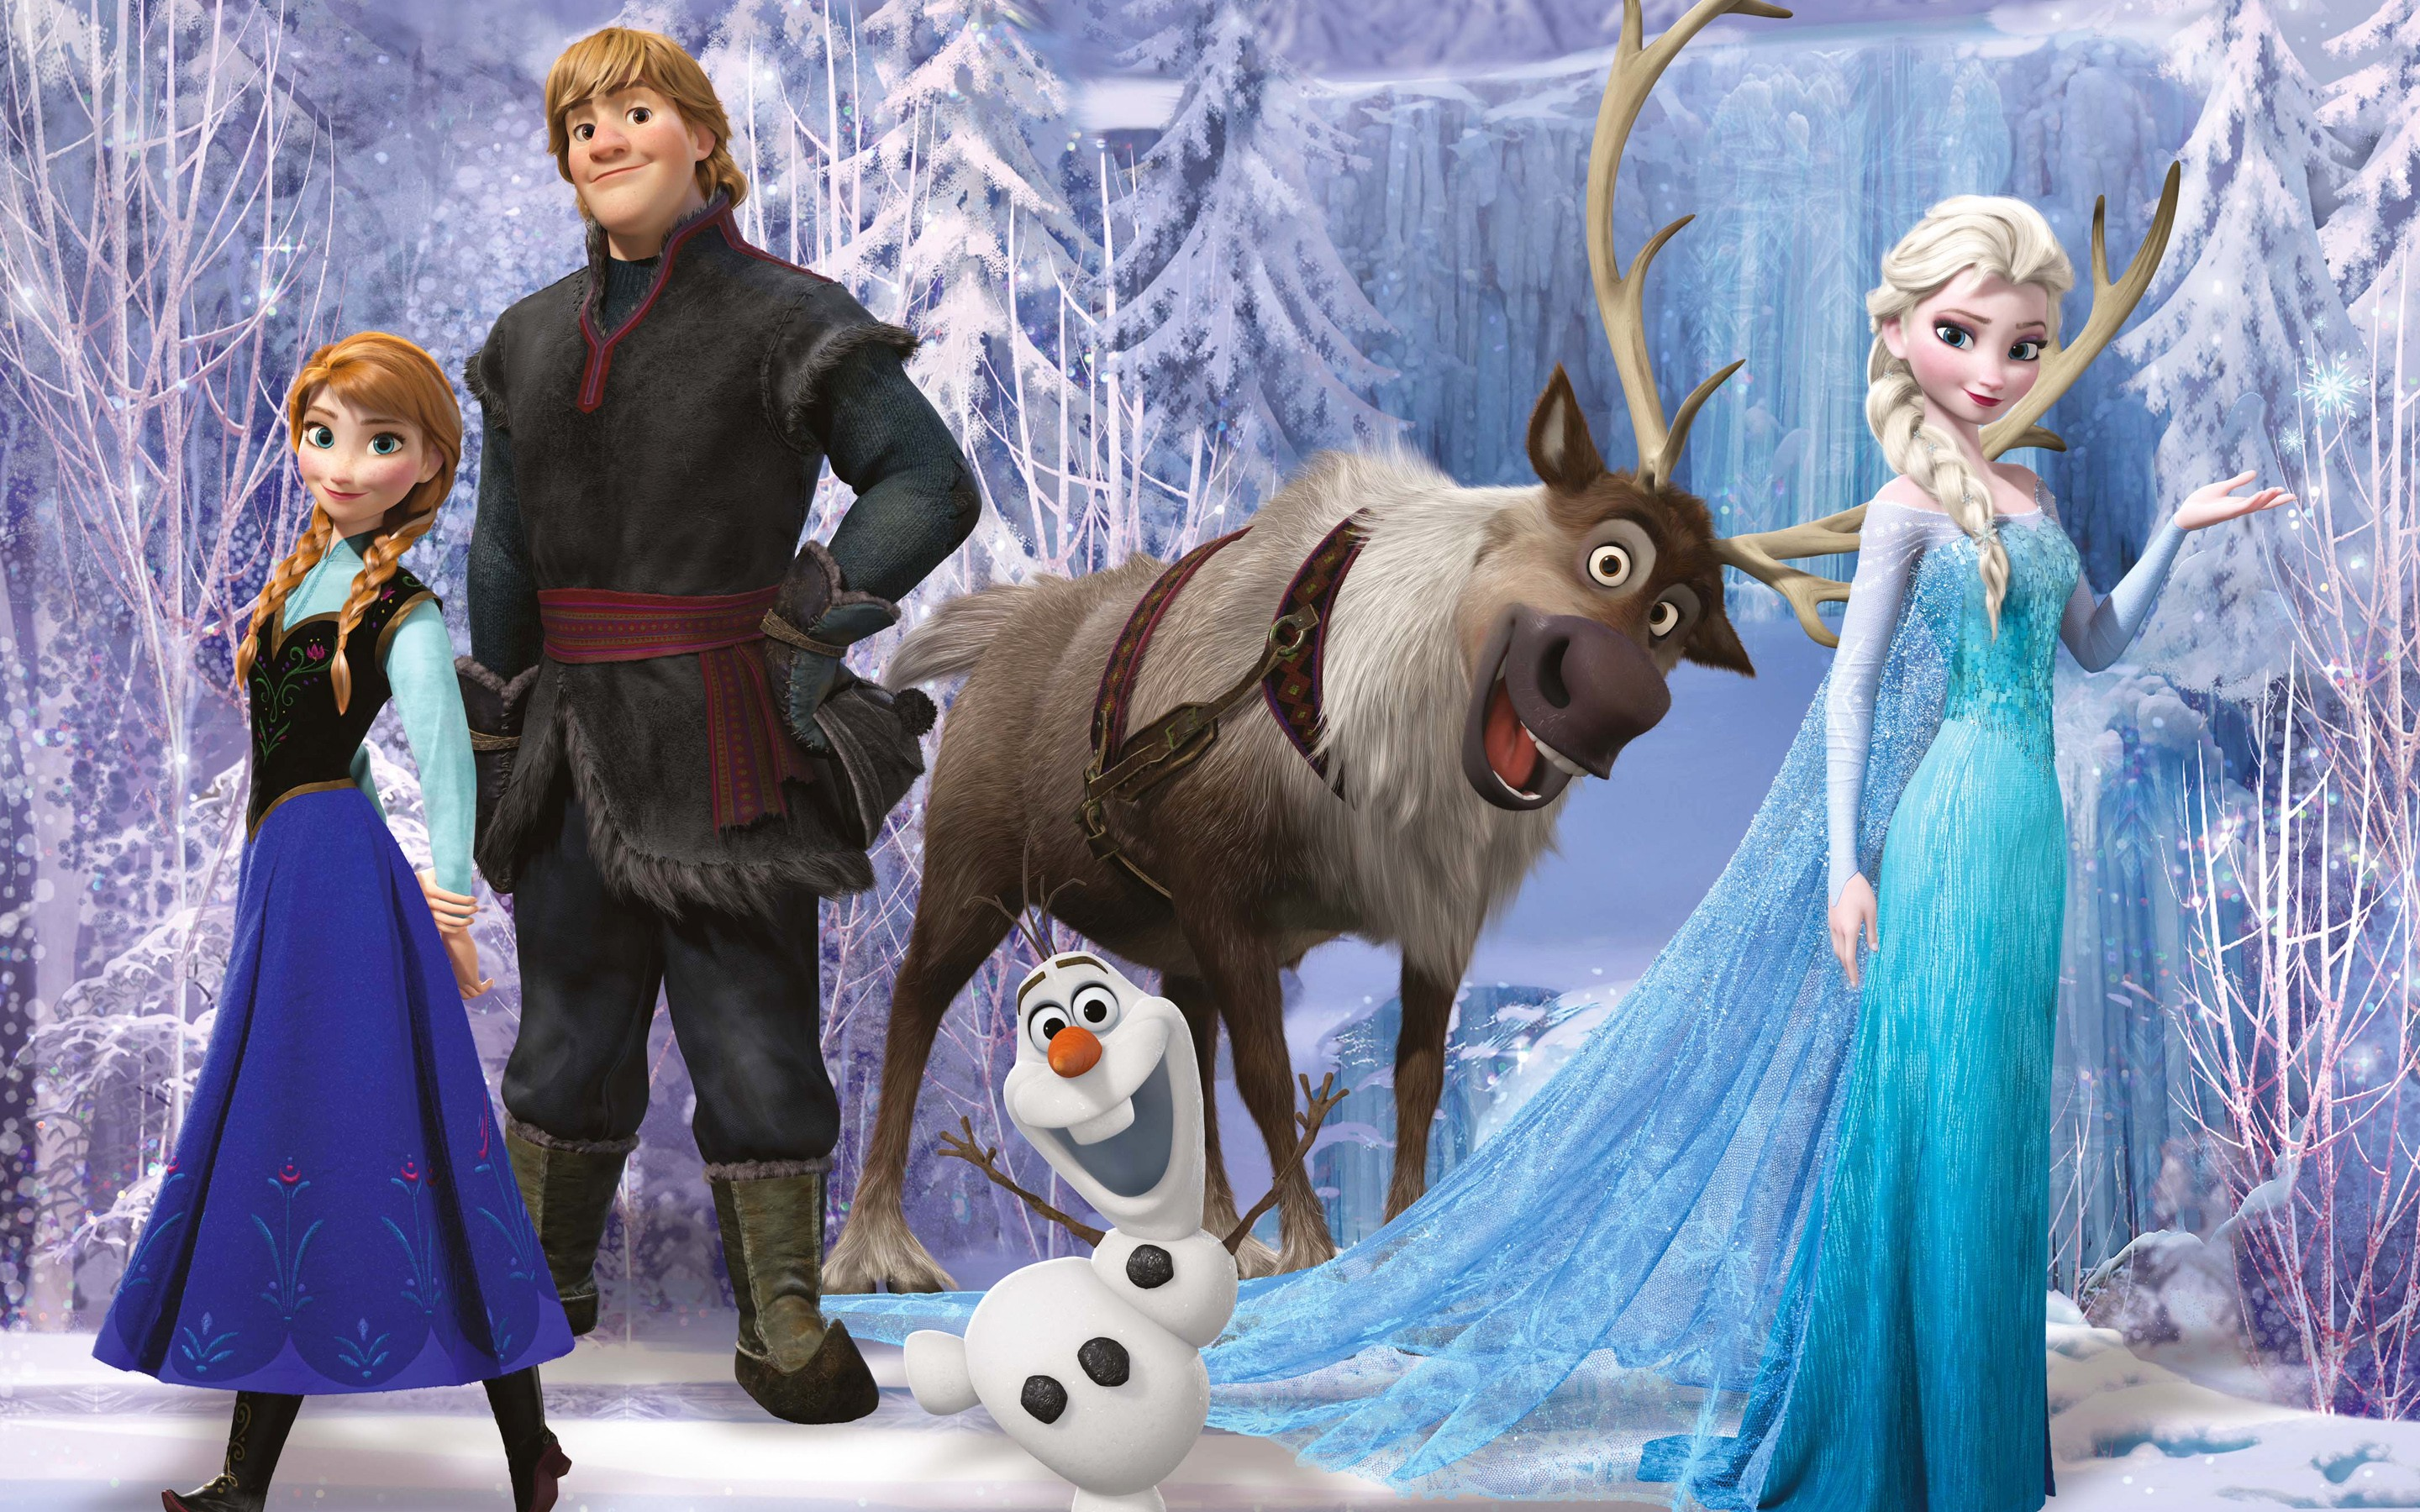 Frozen Movie 2 Frozen 2 Wallpaper Hd 49271 Hd